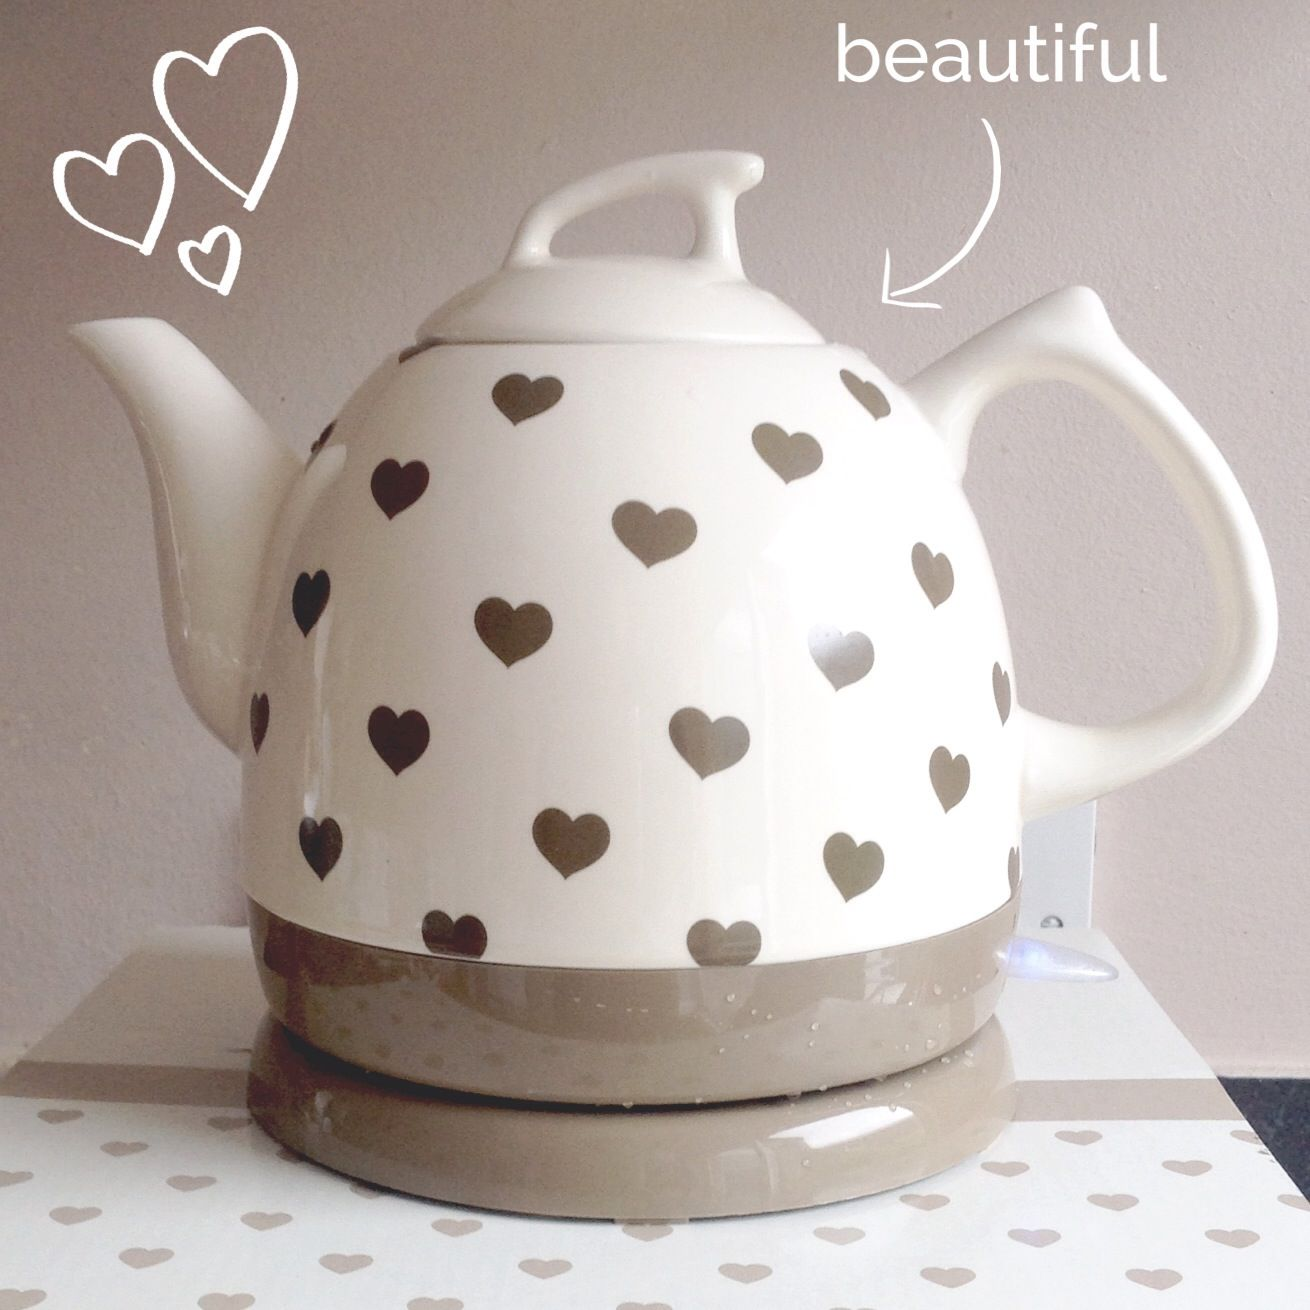 Cute Ceramic Heart Teapot Tea Pots Kitchen Appliances